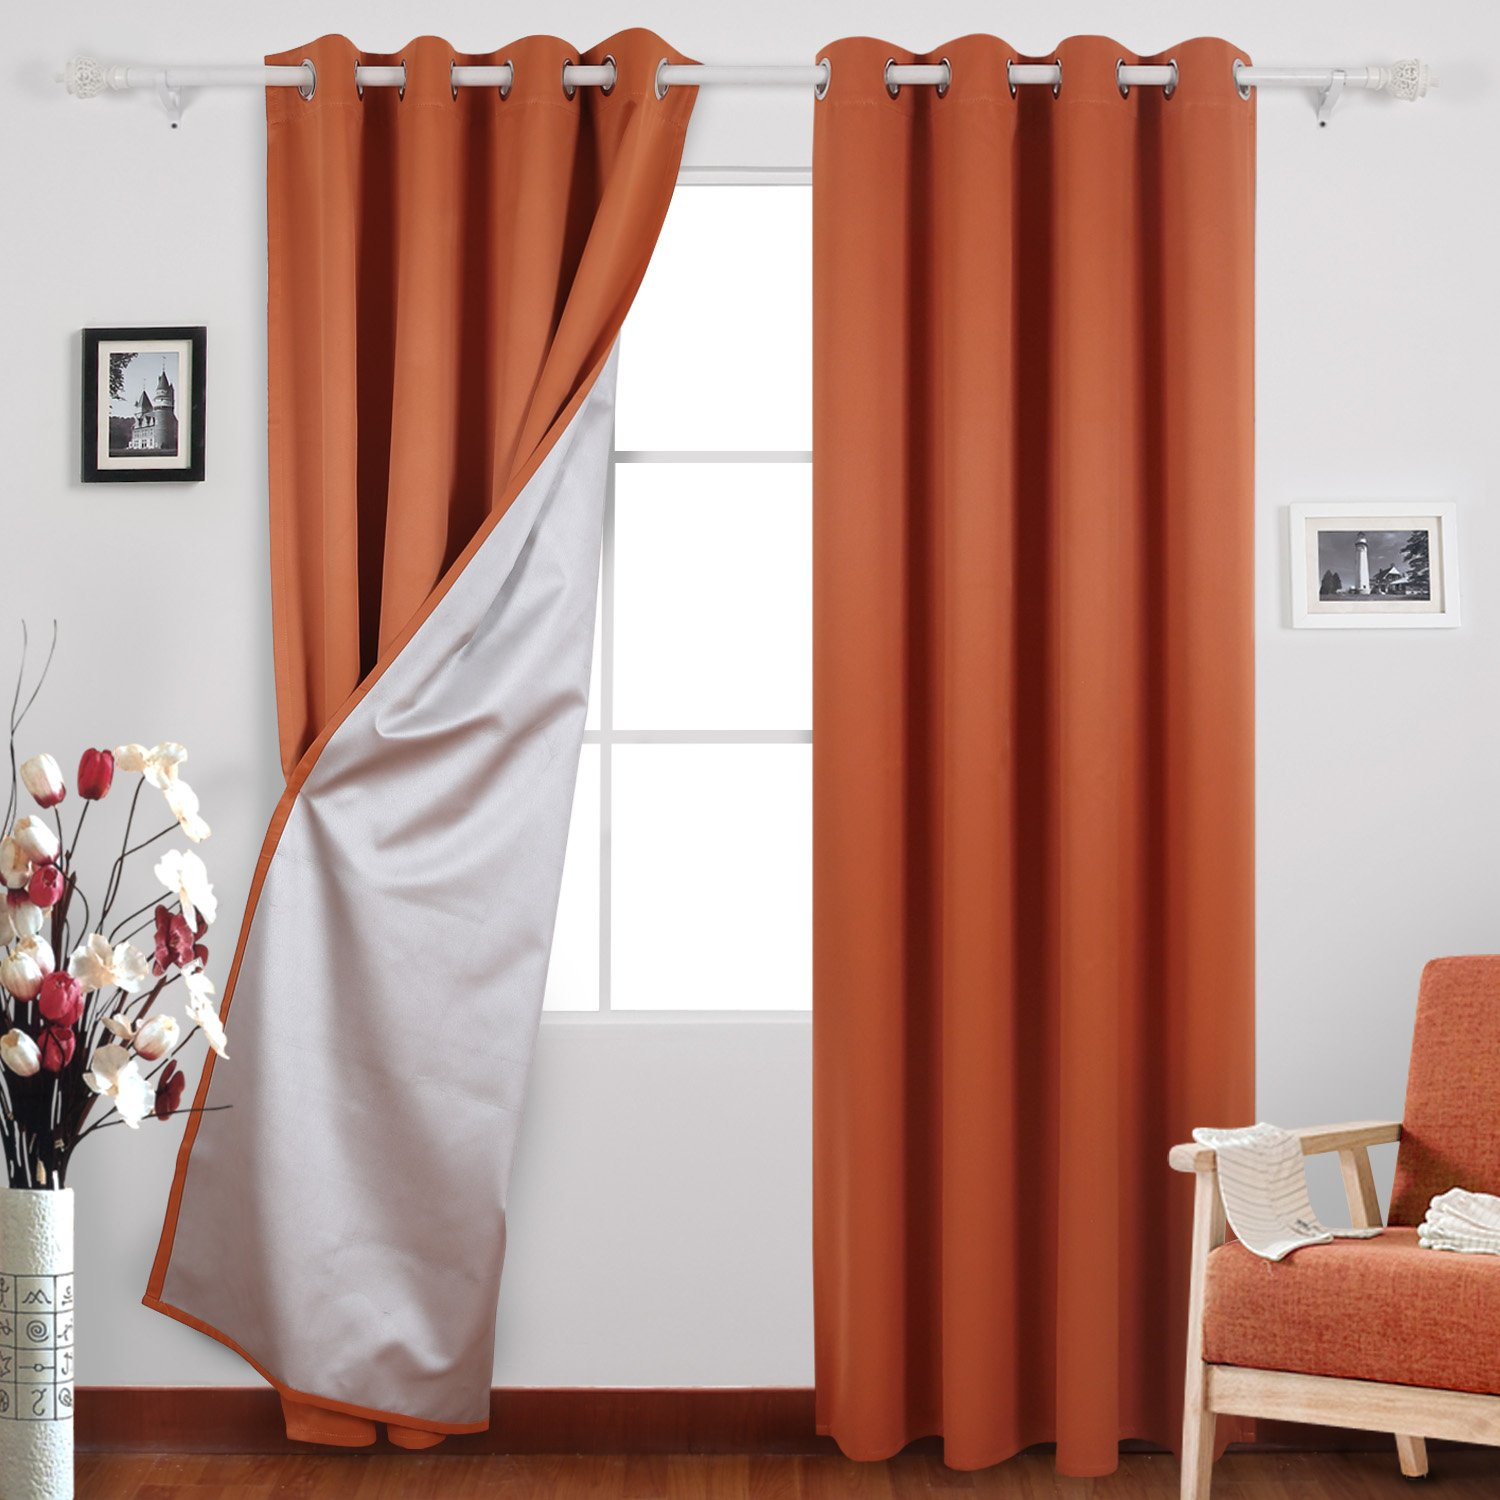 Deconovo Grommet Blackout Drapes with Silver Coating Room Darkening Curtains for Girls Boys Room